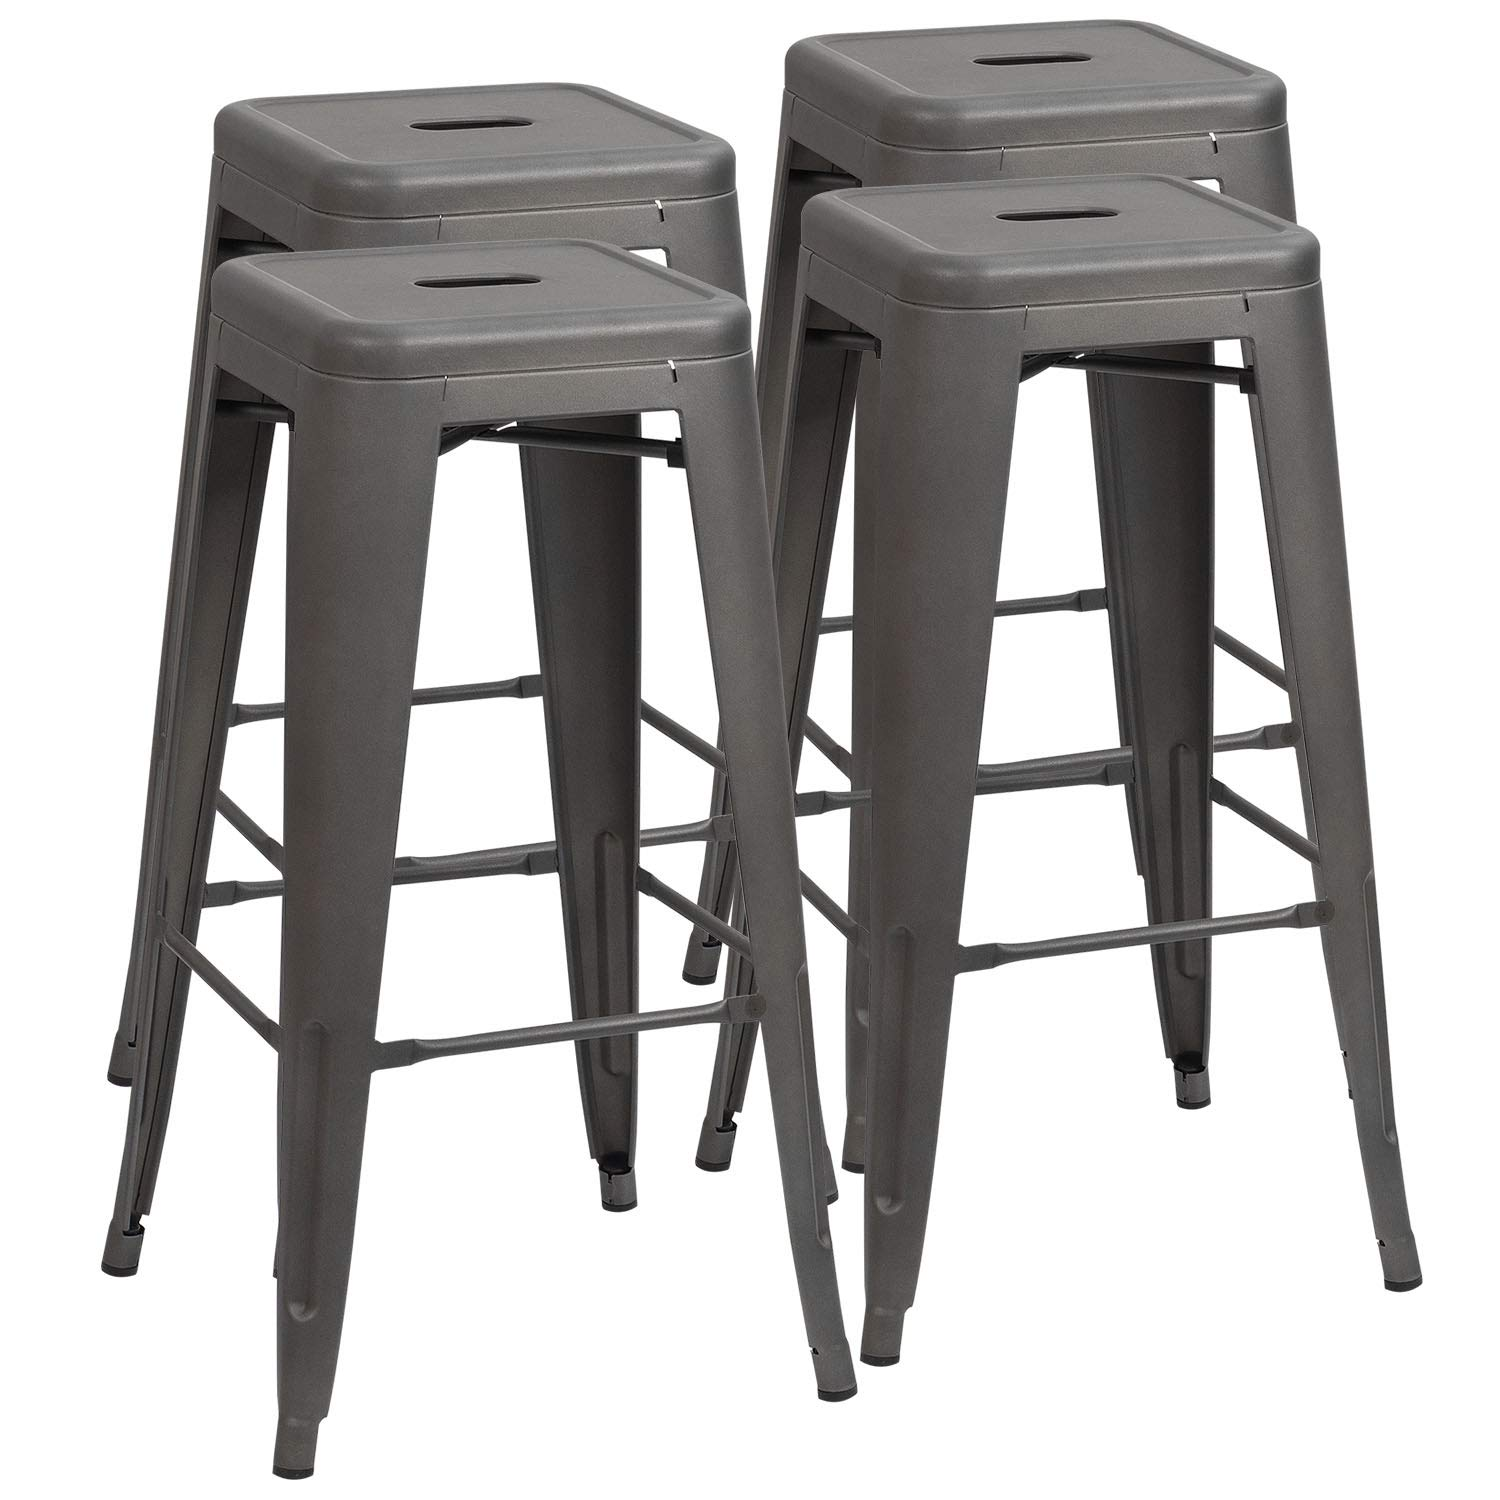 Furmax 30 Inches Gray Metal Bar Stools High Backless Stools Indoor-Outdoor Stackable Kitchen Stools (Set of 4)